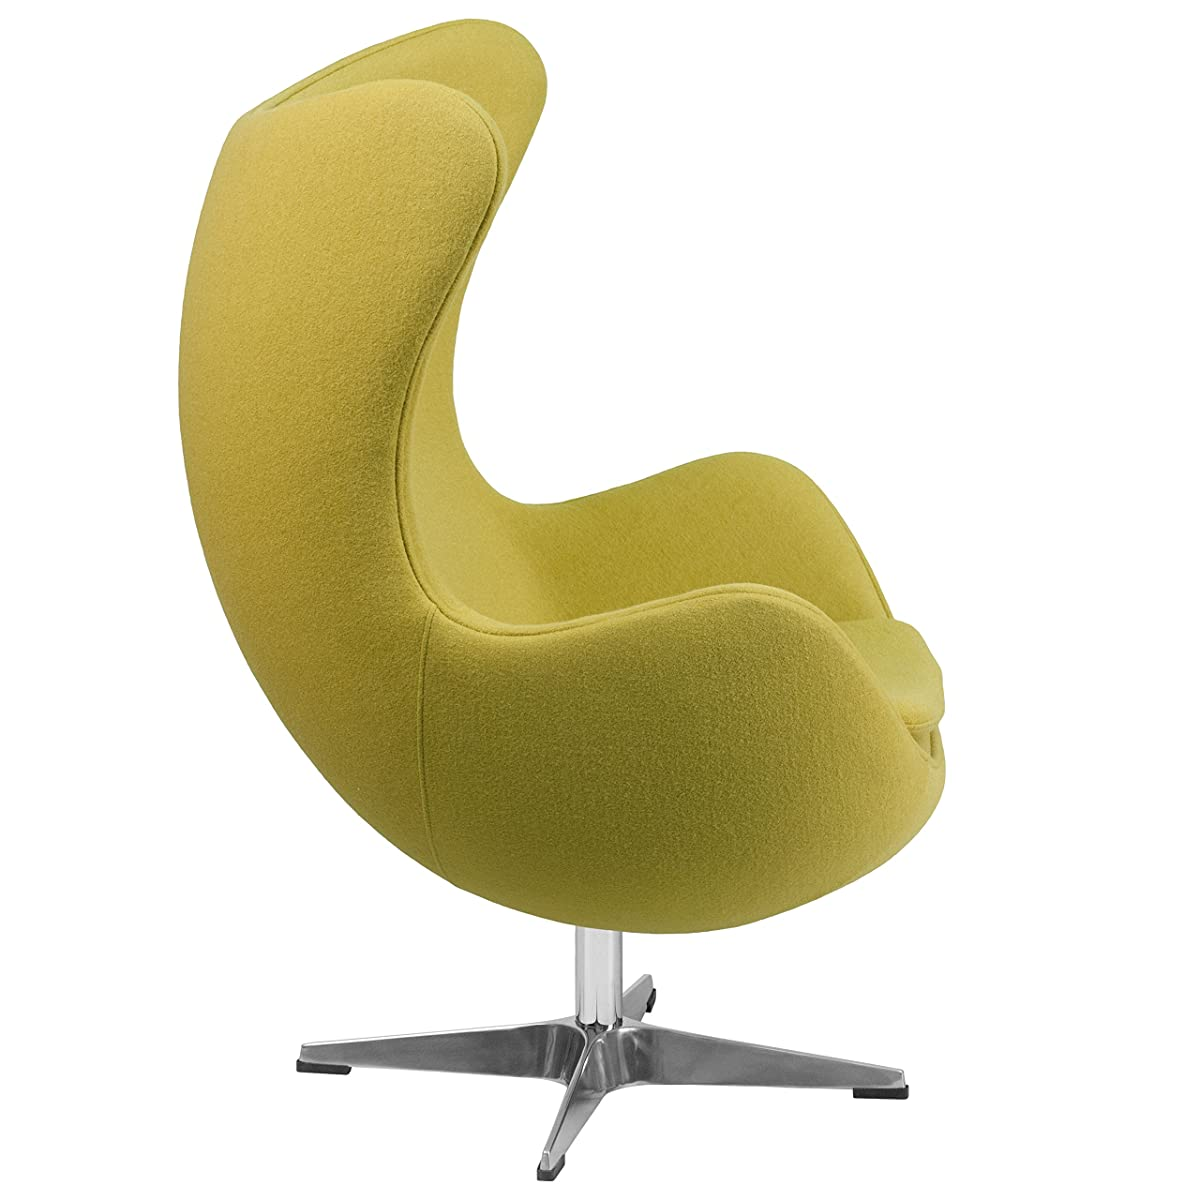 Flash Furniture Citron Wool Fabric Egg Chair with Tilt-Lock Mechanism